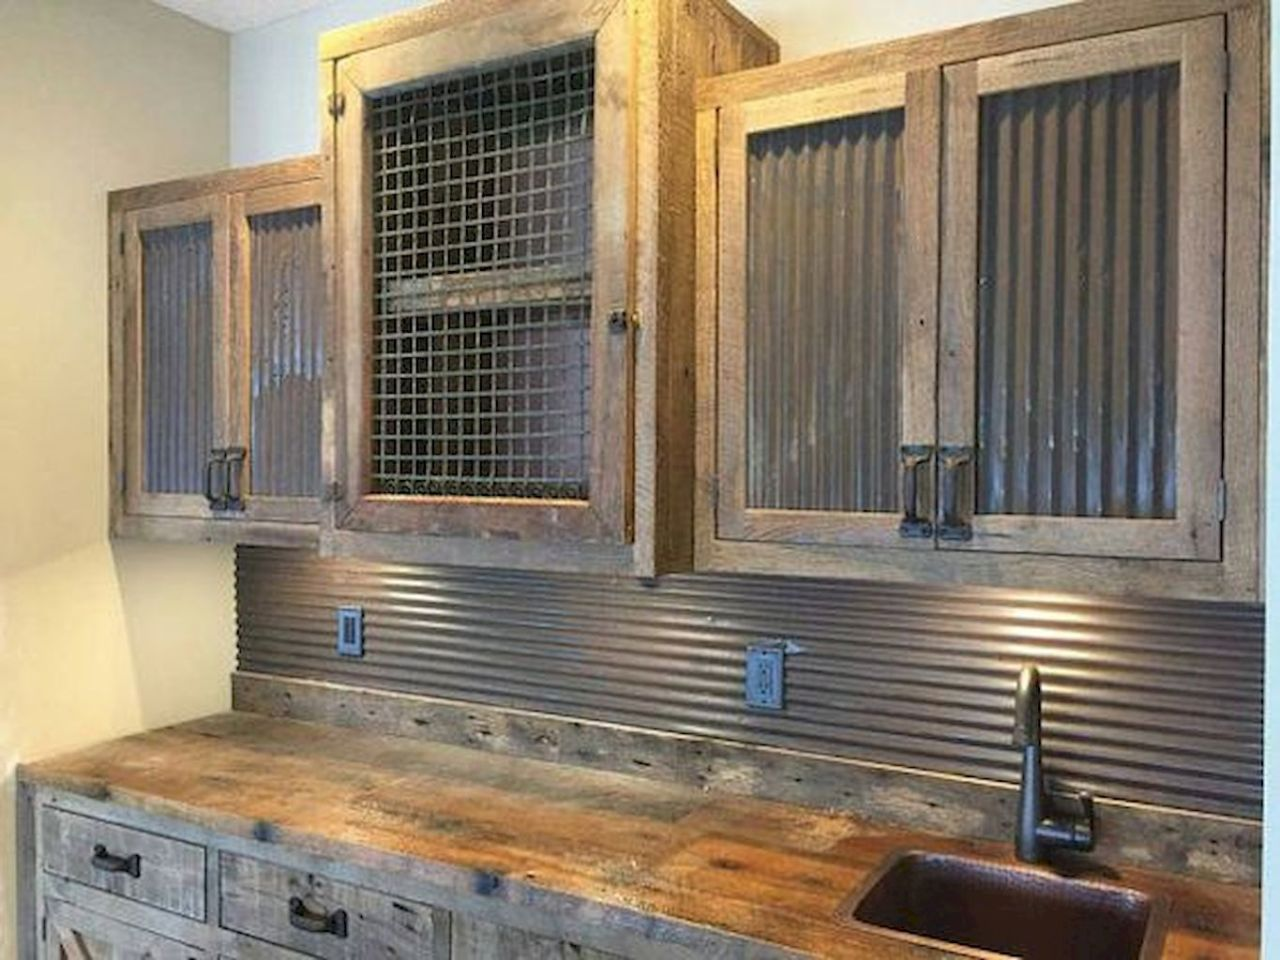 80 Rustic Kitchen Cabinet Makeover Ideas Http Homedecors Info 80 Rustic Kitchen Cabinet Makeover Ideas Rustic Kitchen Cabinets Home Rustic Kitchen